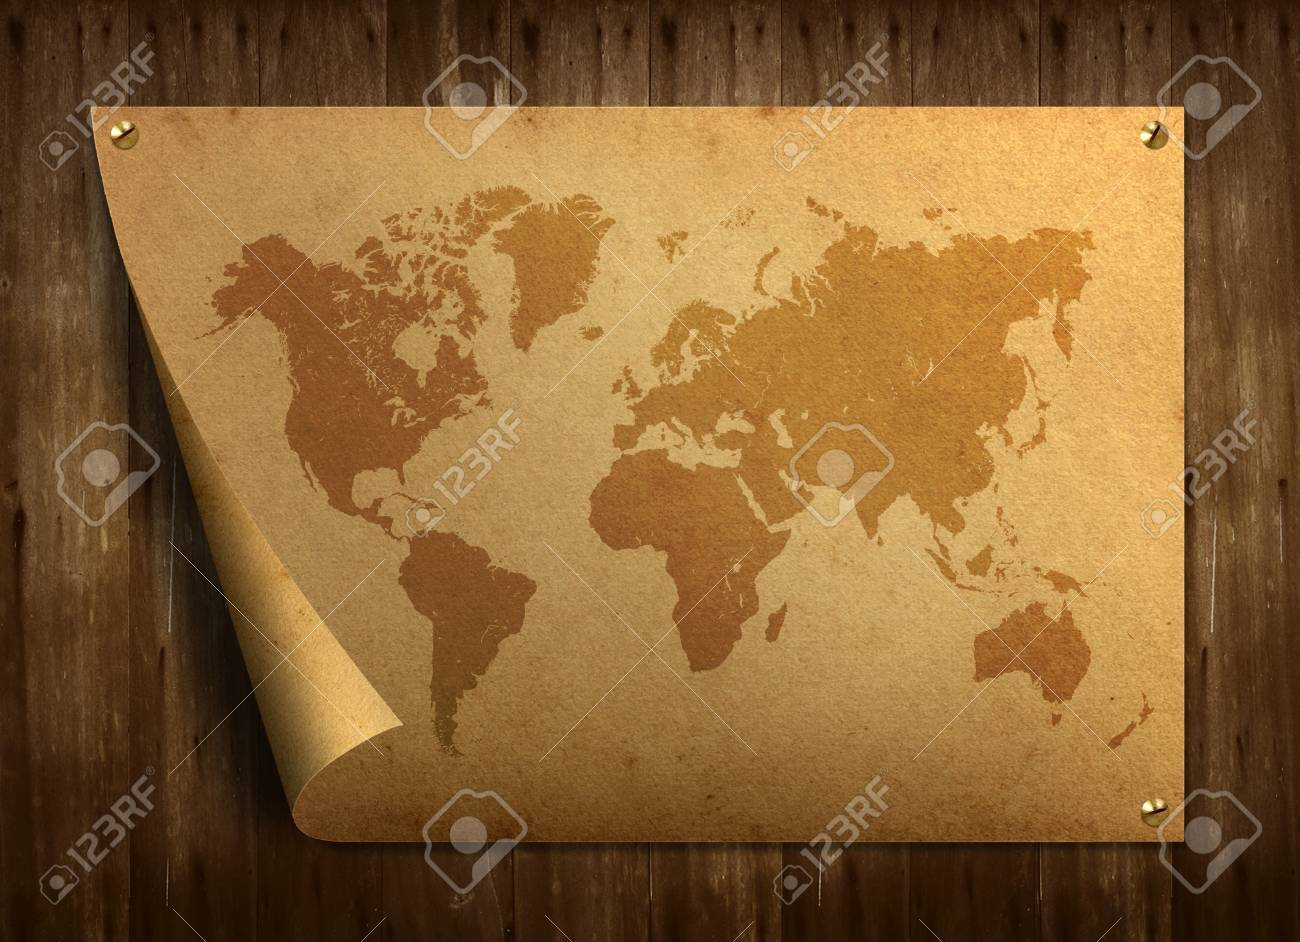 World map on old paper. Stuck on the old wooden floor. Stock Photo - 9544100